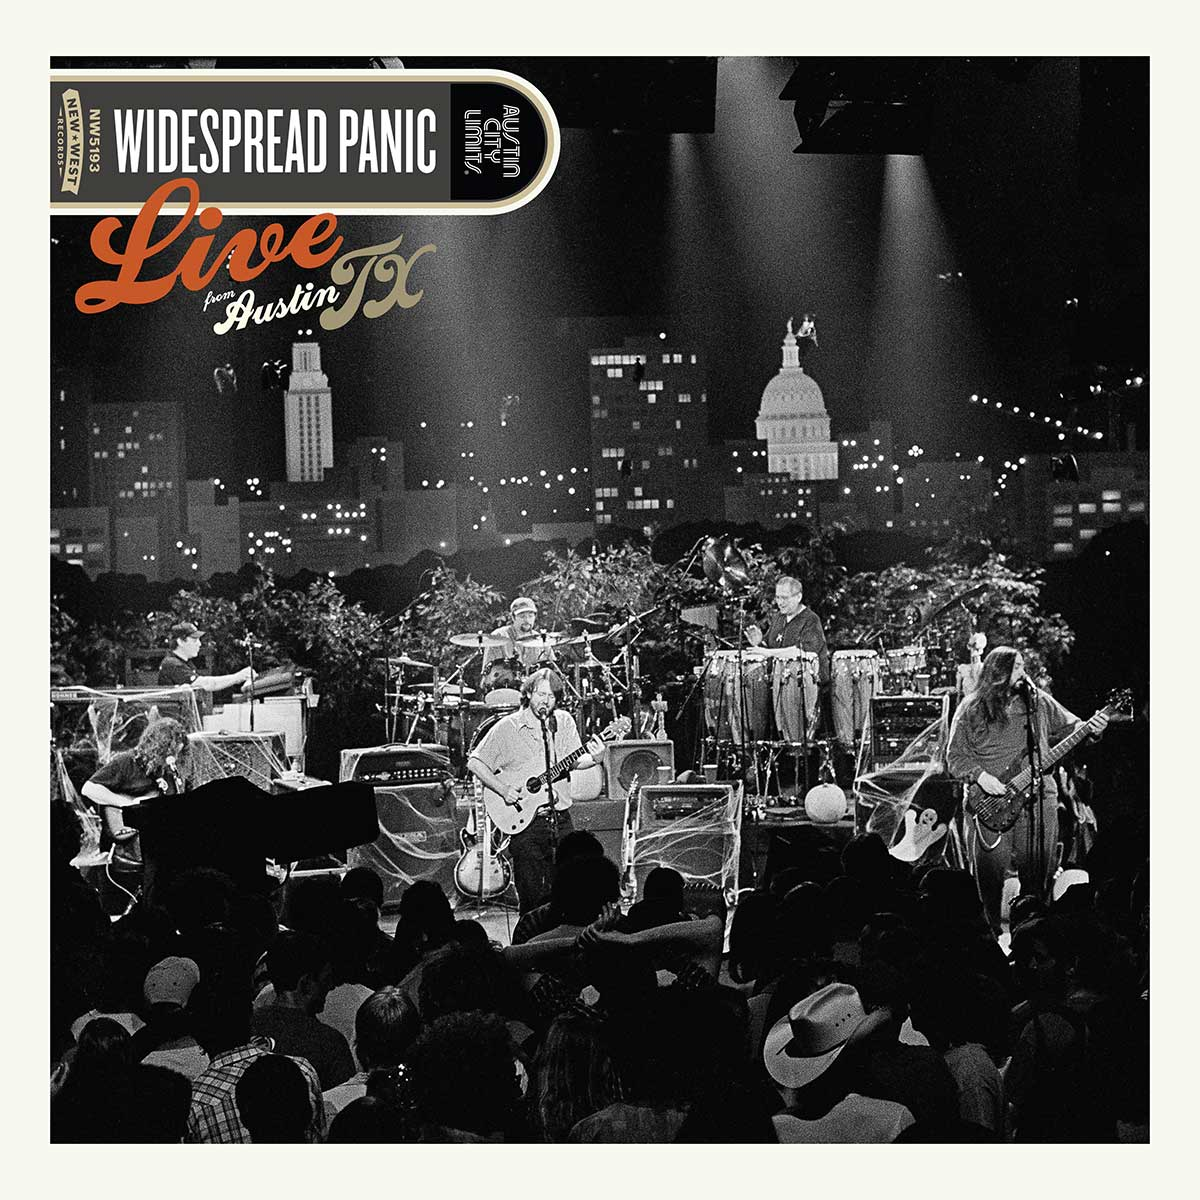 WIDESPREAD PANIC - LIVE FROM AUSTIN, TX